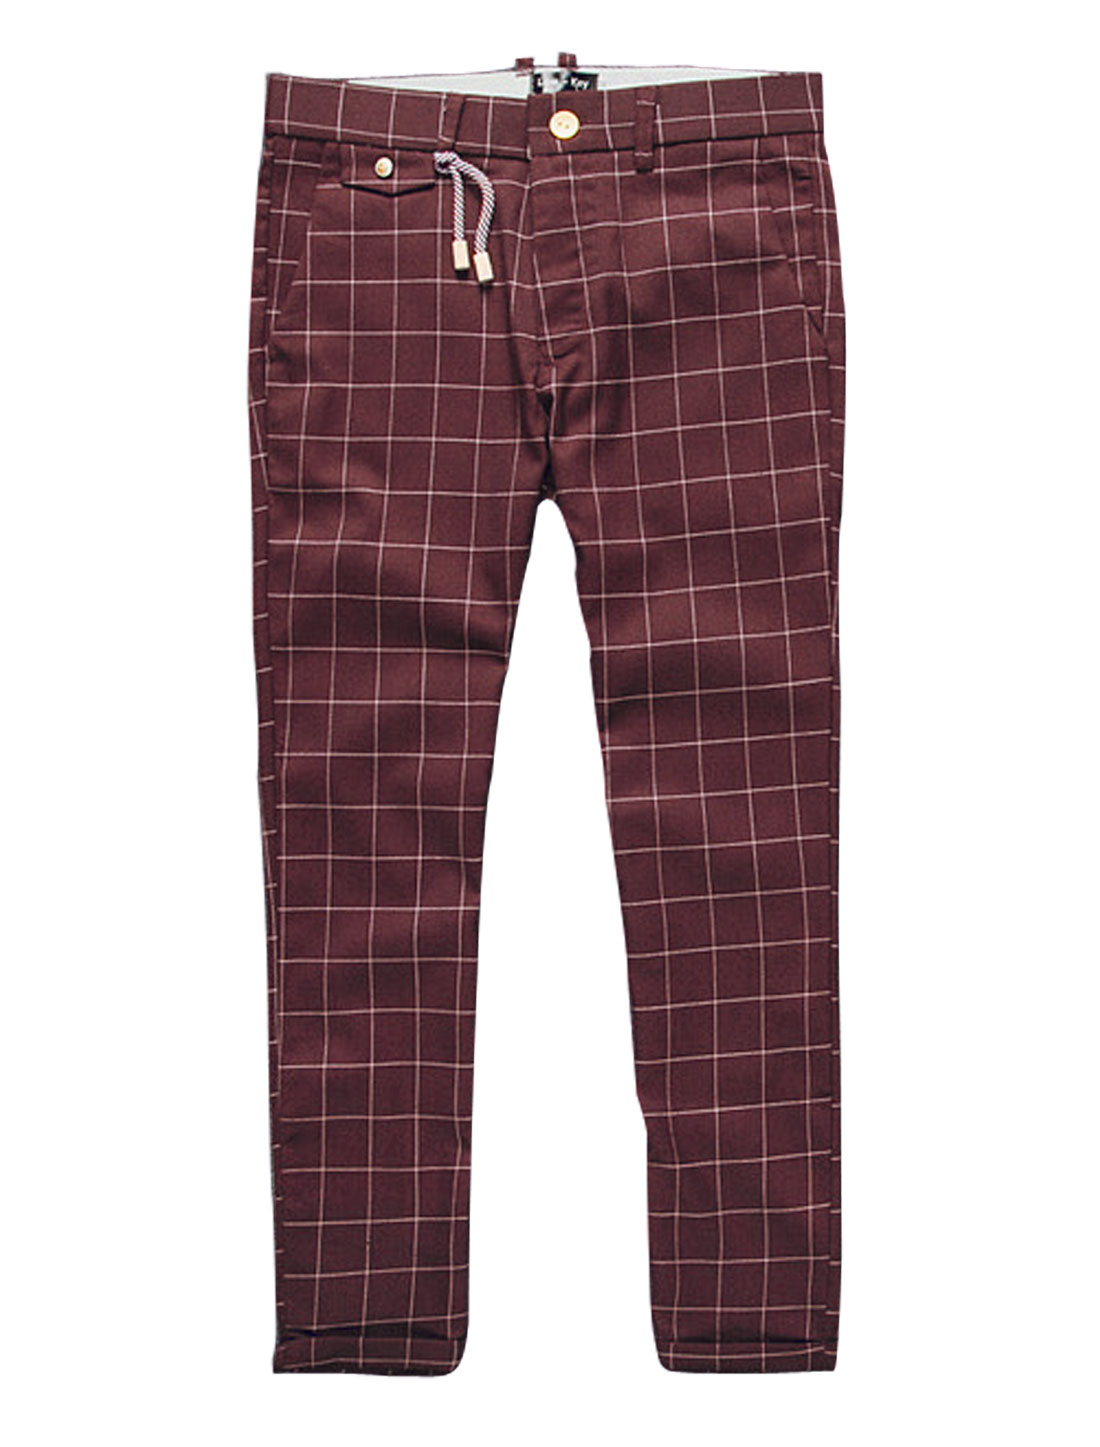 Men Plaids Rope Decor Rolled Cuffs Casual Cropped Pants Burgundy W30